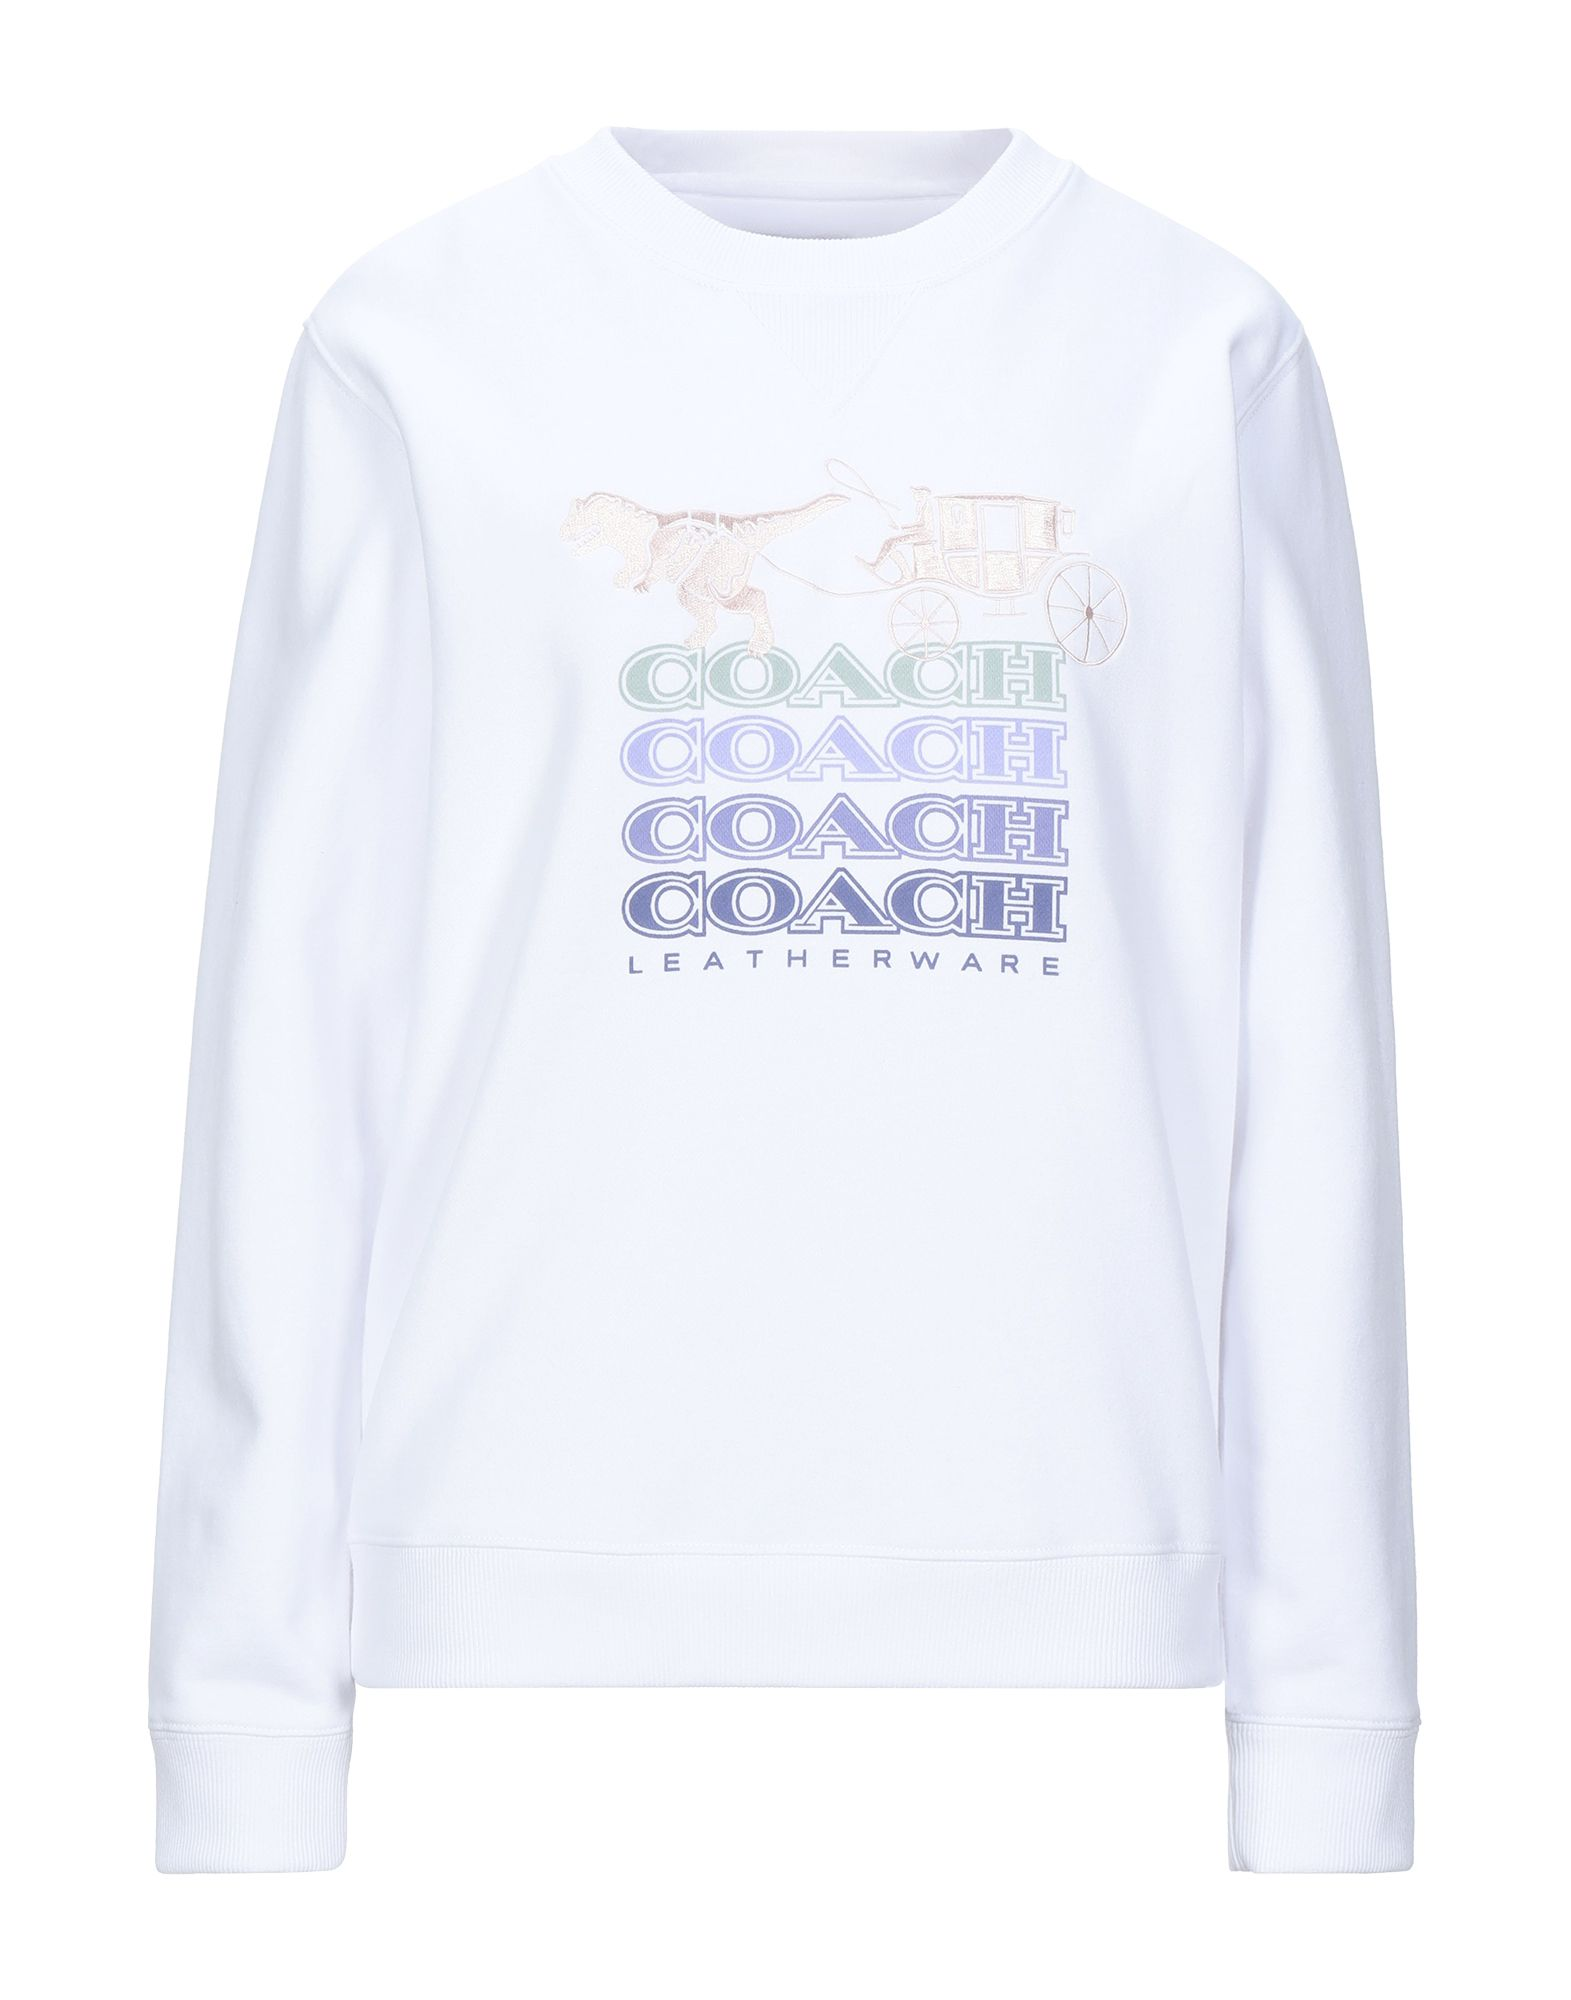 COACH Sweatshirts. logo, embroidered detailing, solid color, round collar, long sleeves, no pockets, fleece lining. 60% Cotton, 40% Polyester, Elastane